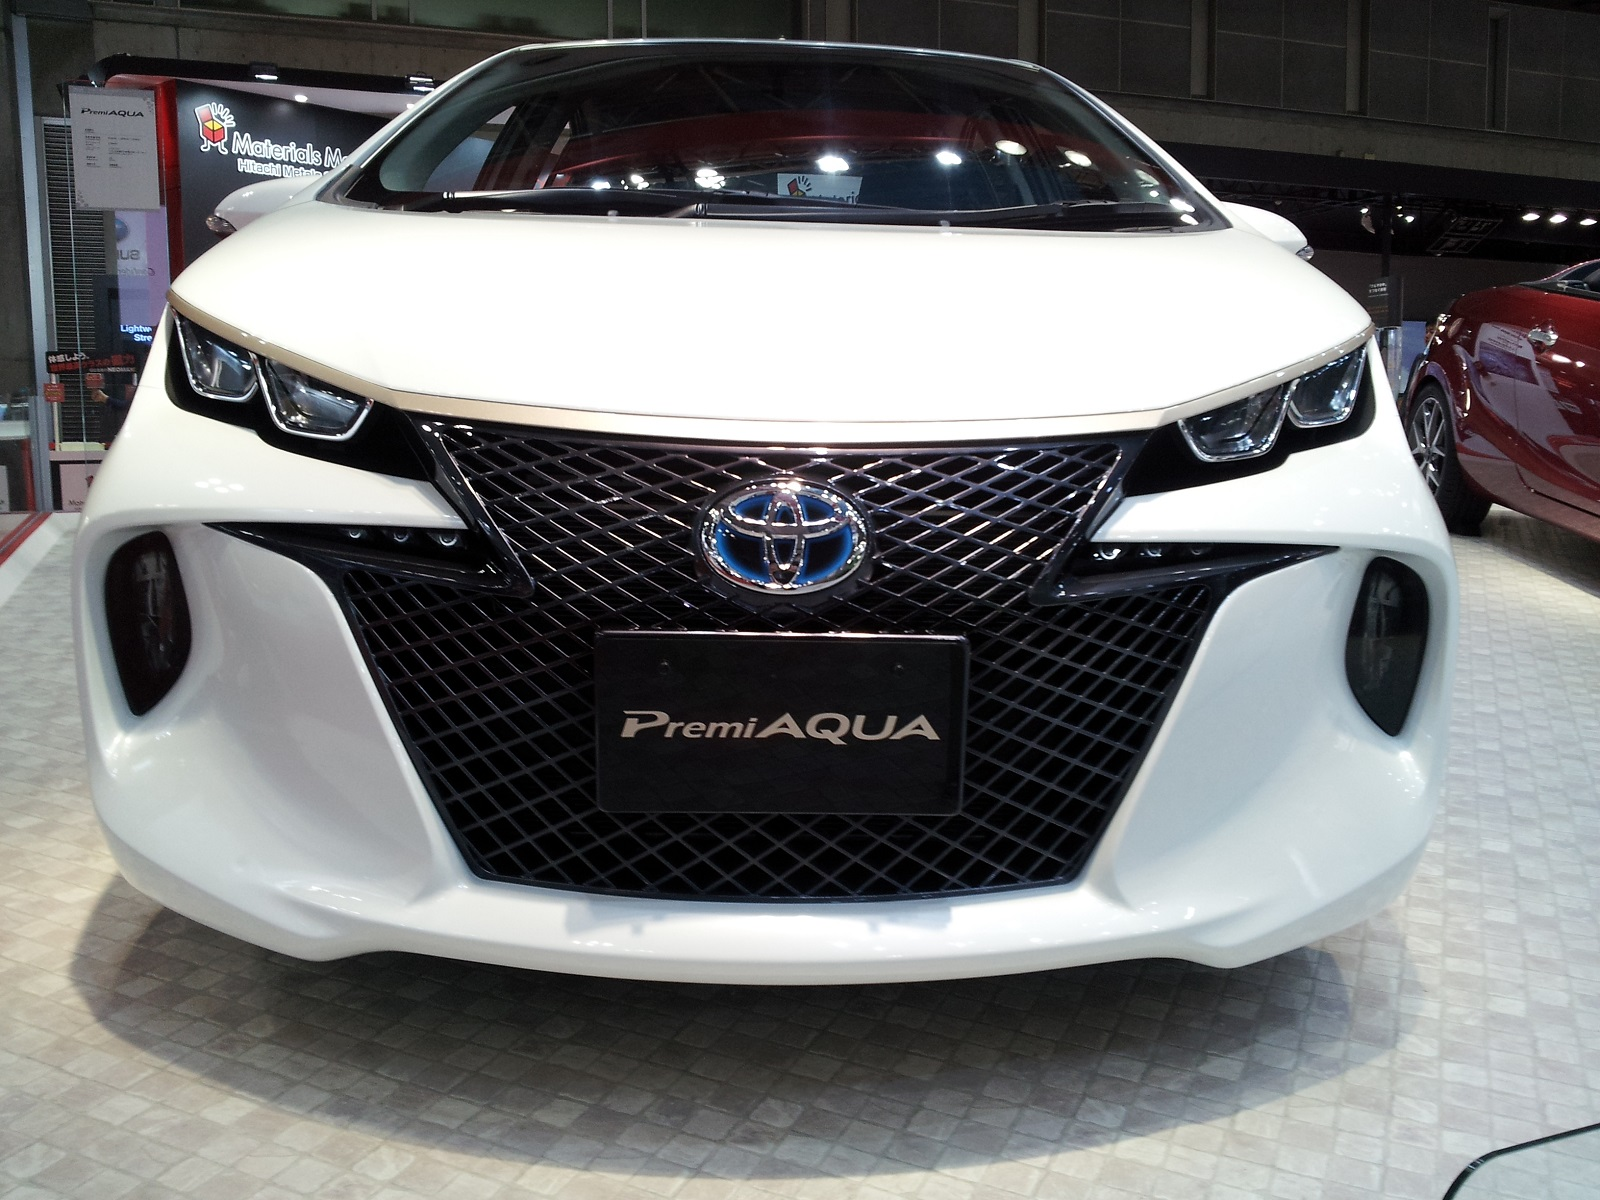 New Cars From Tokyo Gas Saving Volts Tesla Fire Drama Today S Car News